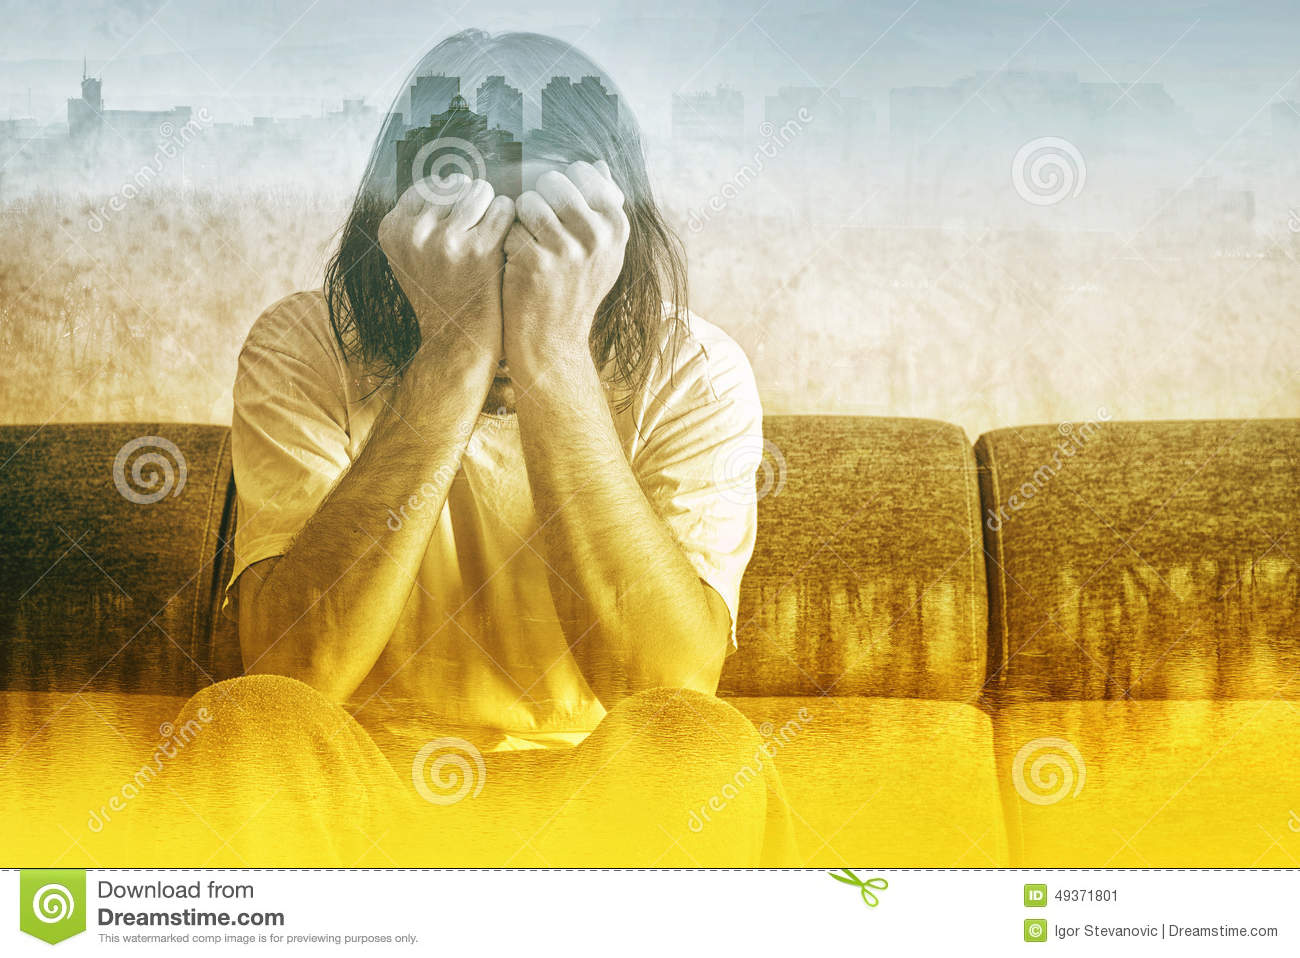 Social Alienation Concept Stock Photo - Image: 49371801